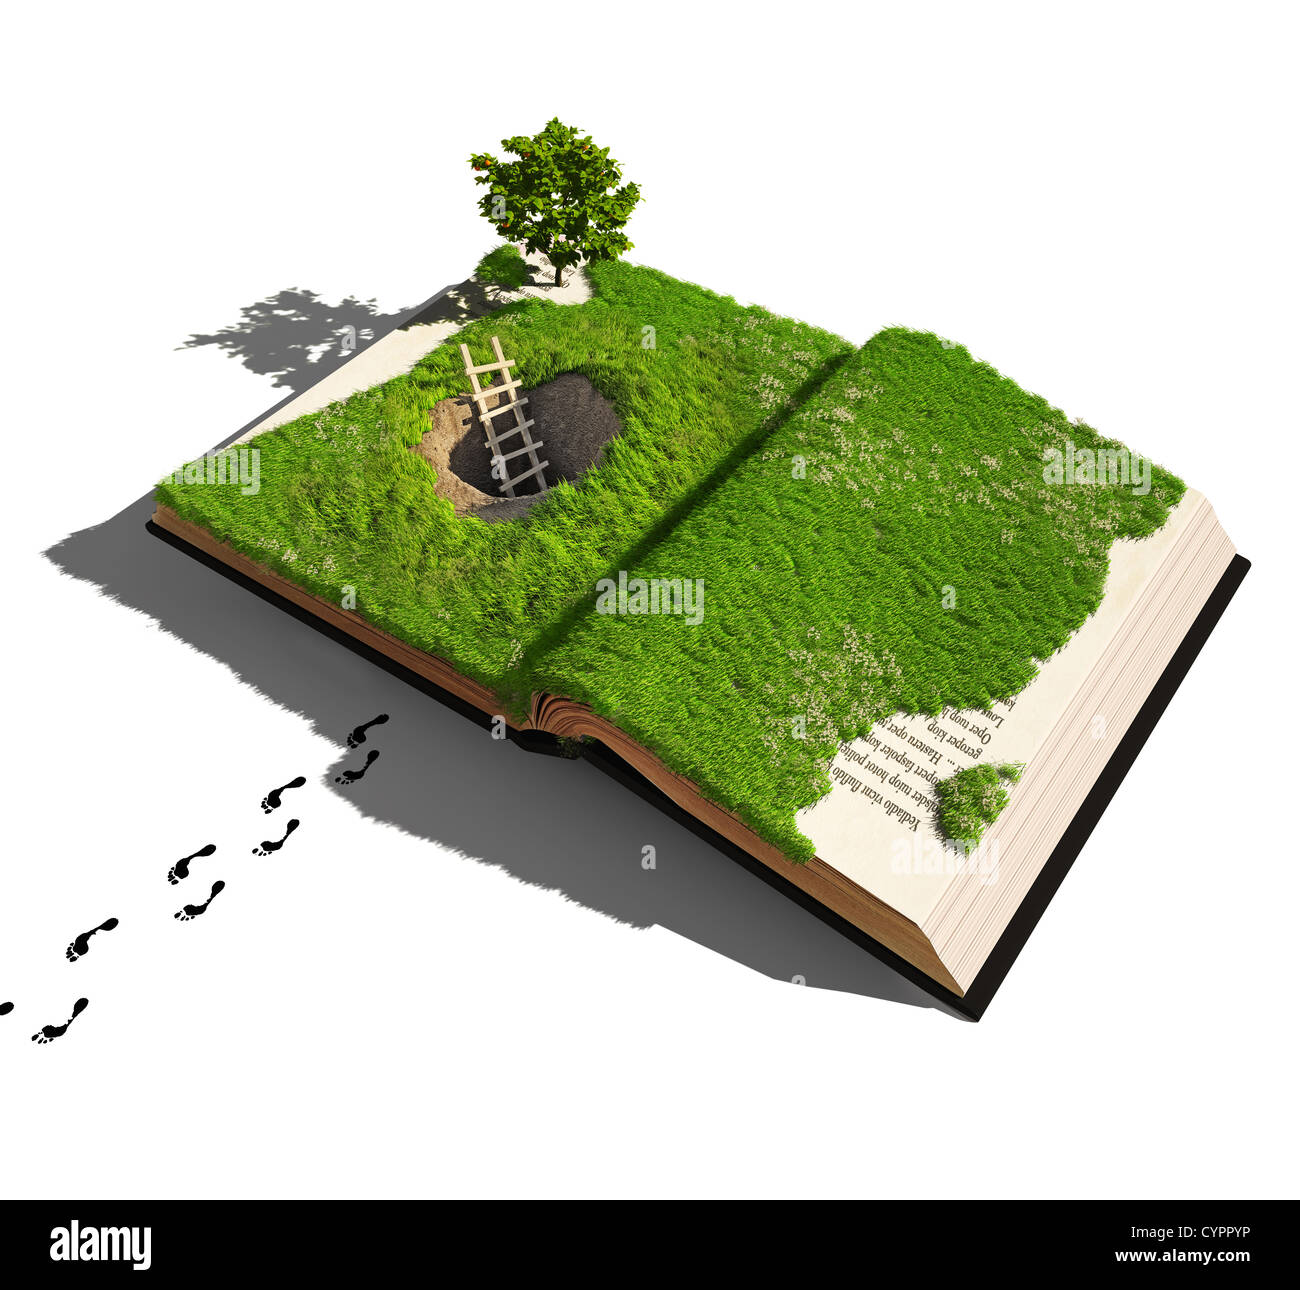 escape from a fairy tale (illustrated concept) - Stock Image